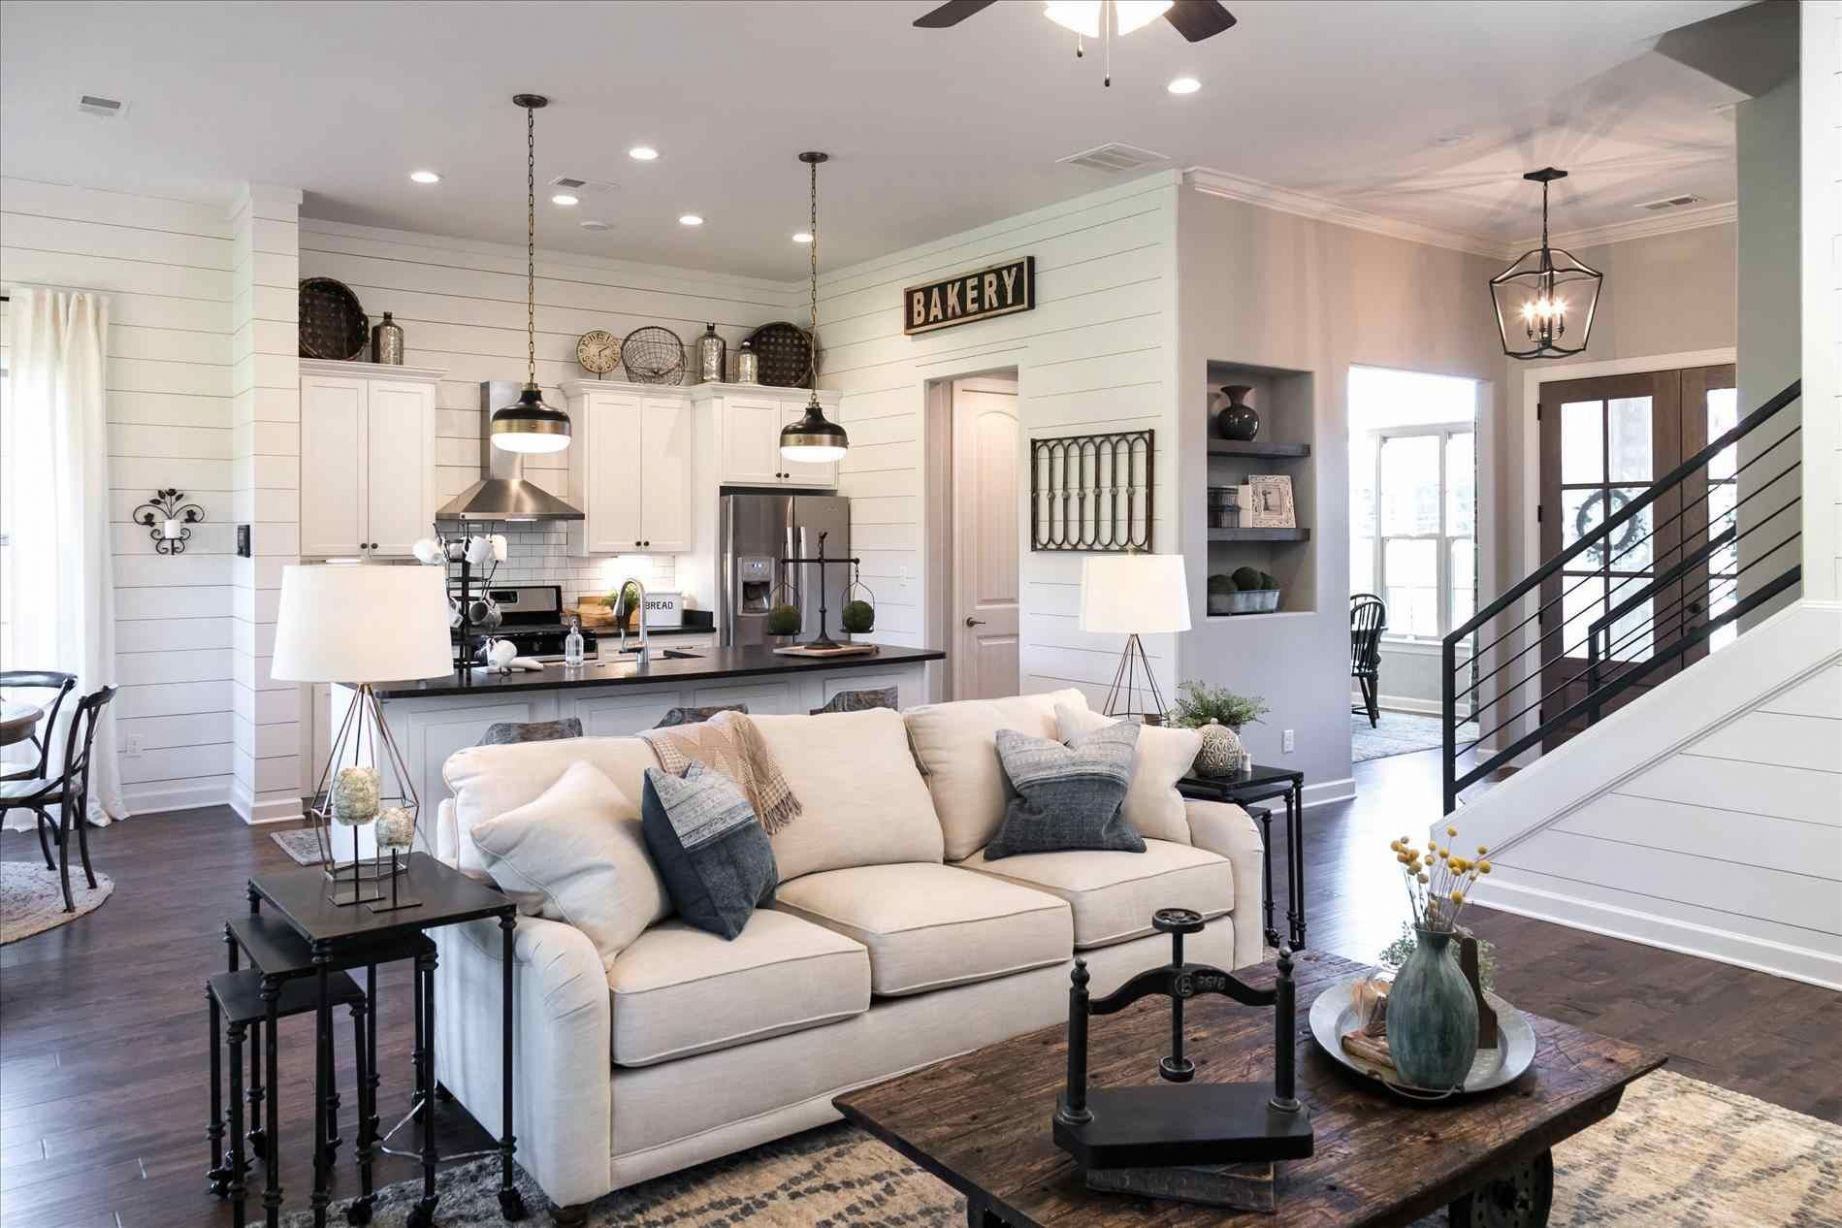 Scraped chip and joanna gaines u home tour in waco texas chip ...